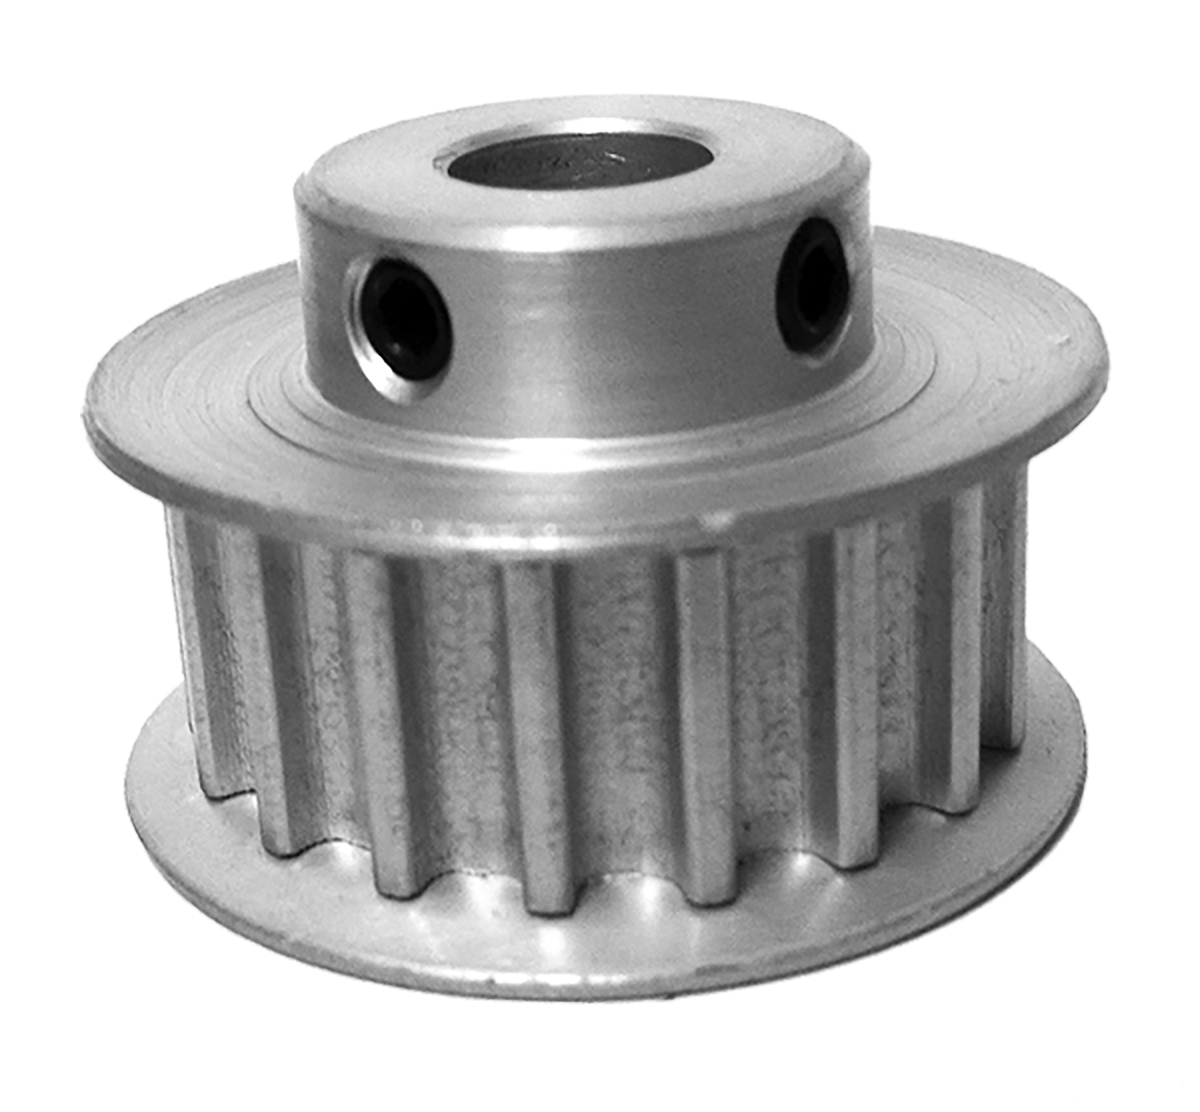 12-5M09-6FA4 - Aluminum Powerhouse®HTD® Pulleys